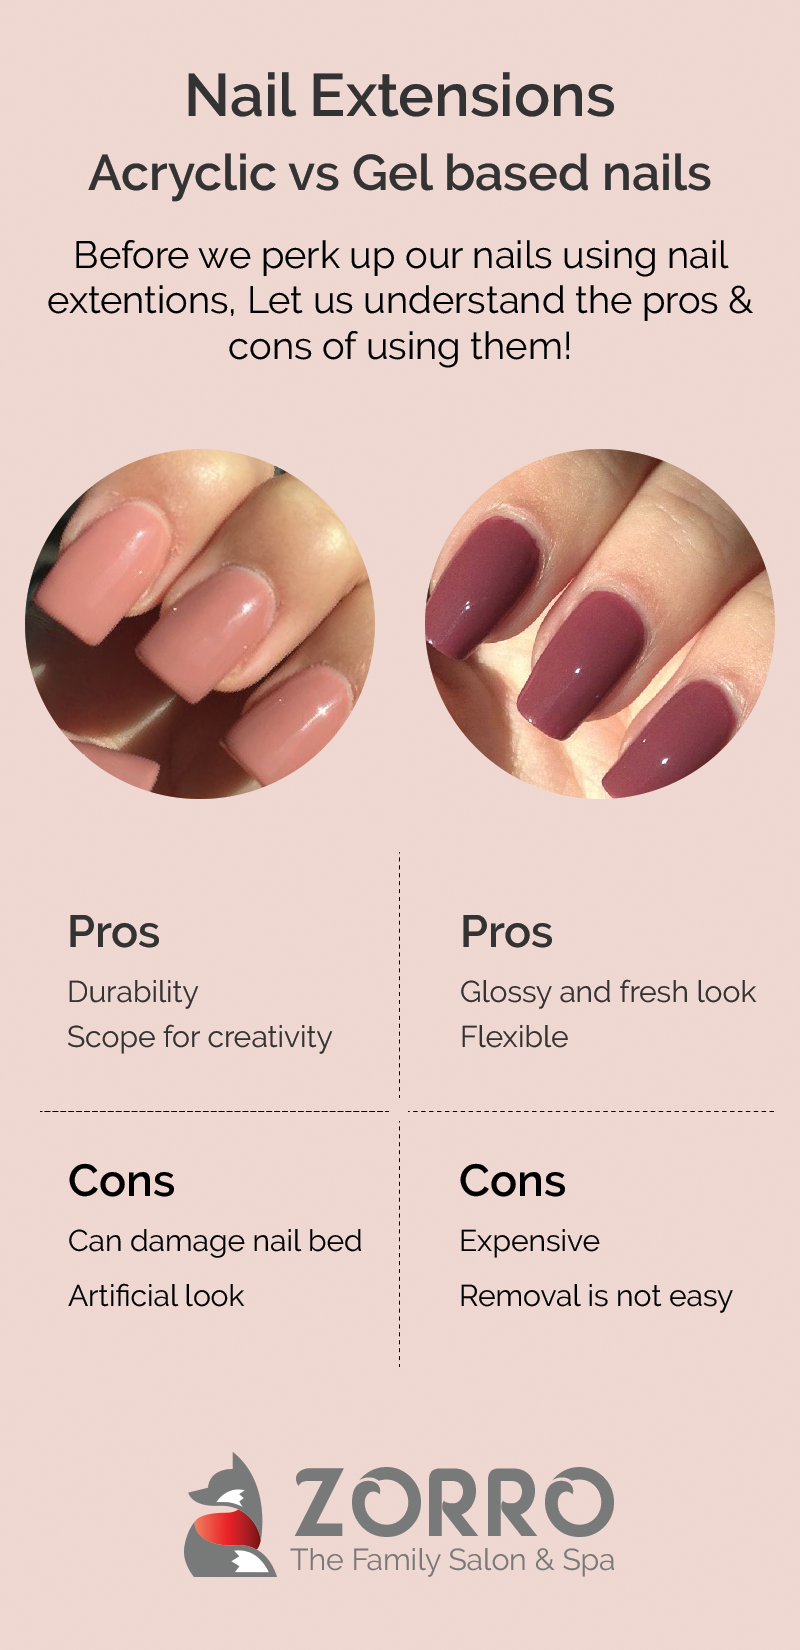 Are Gel Nails Better Than Acrylic But Then Acrylic Are More Durable Than Gel Nails Confused About Which One To Nail Extensions Acrylic Nail Extensions Nails